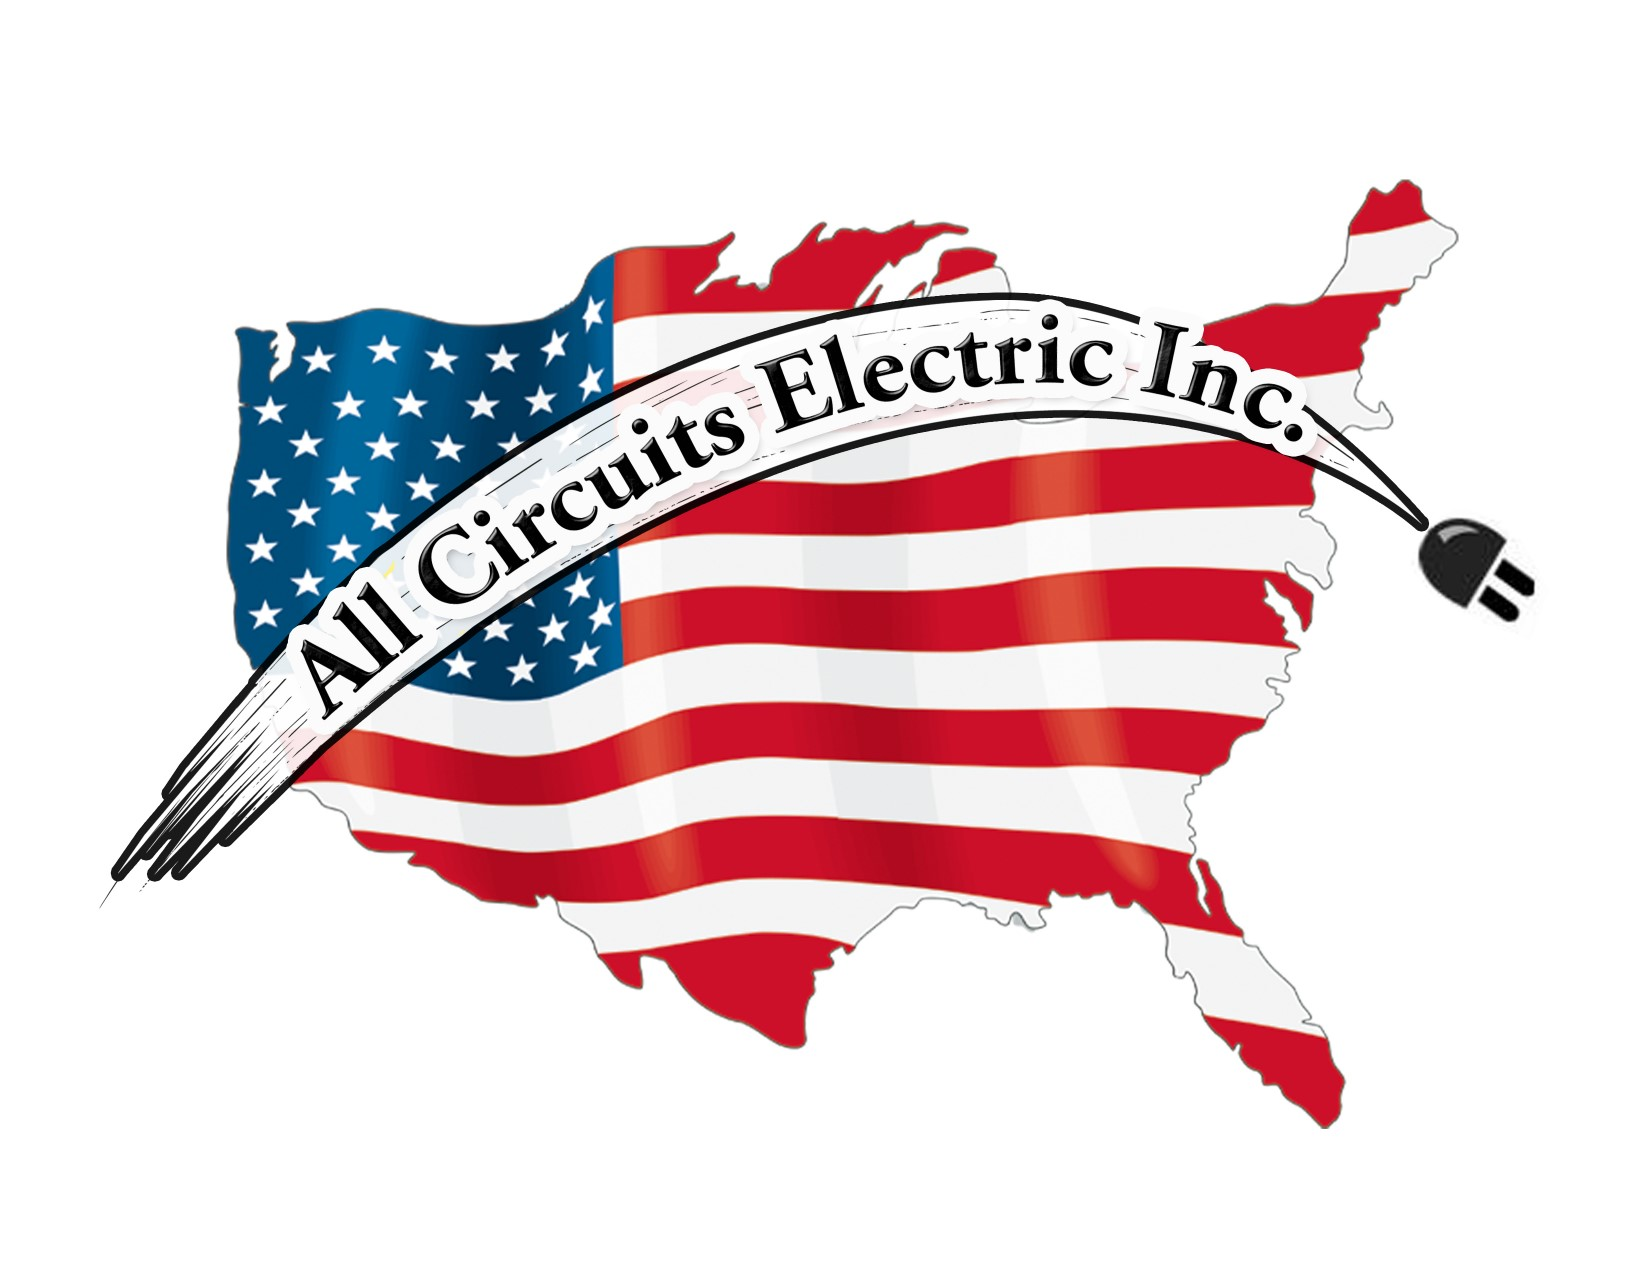 All Circuits Electric Inc.